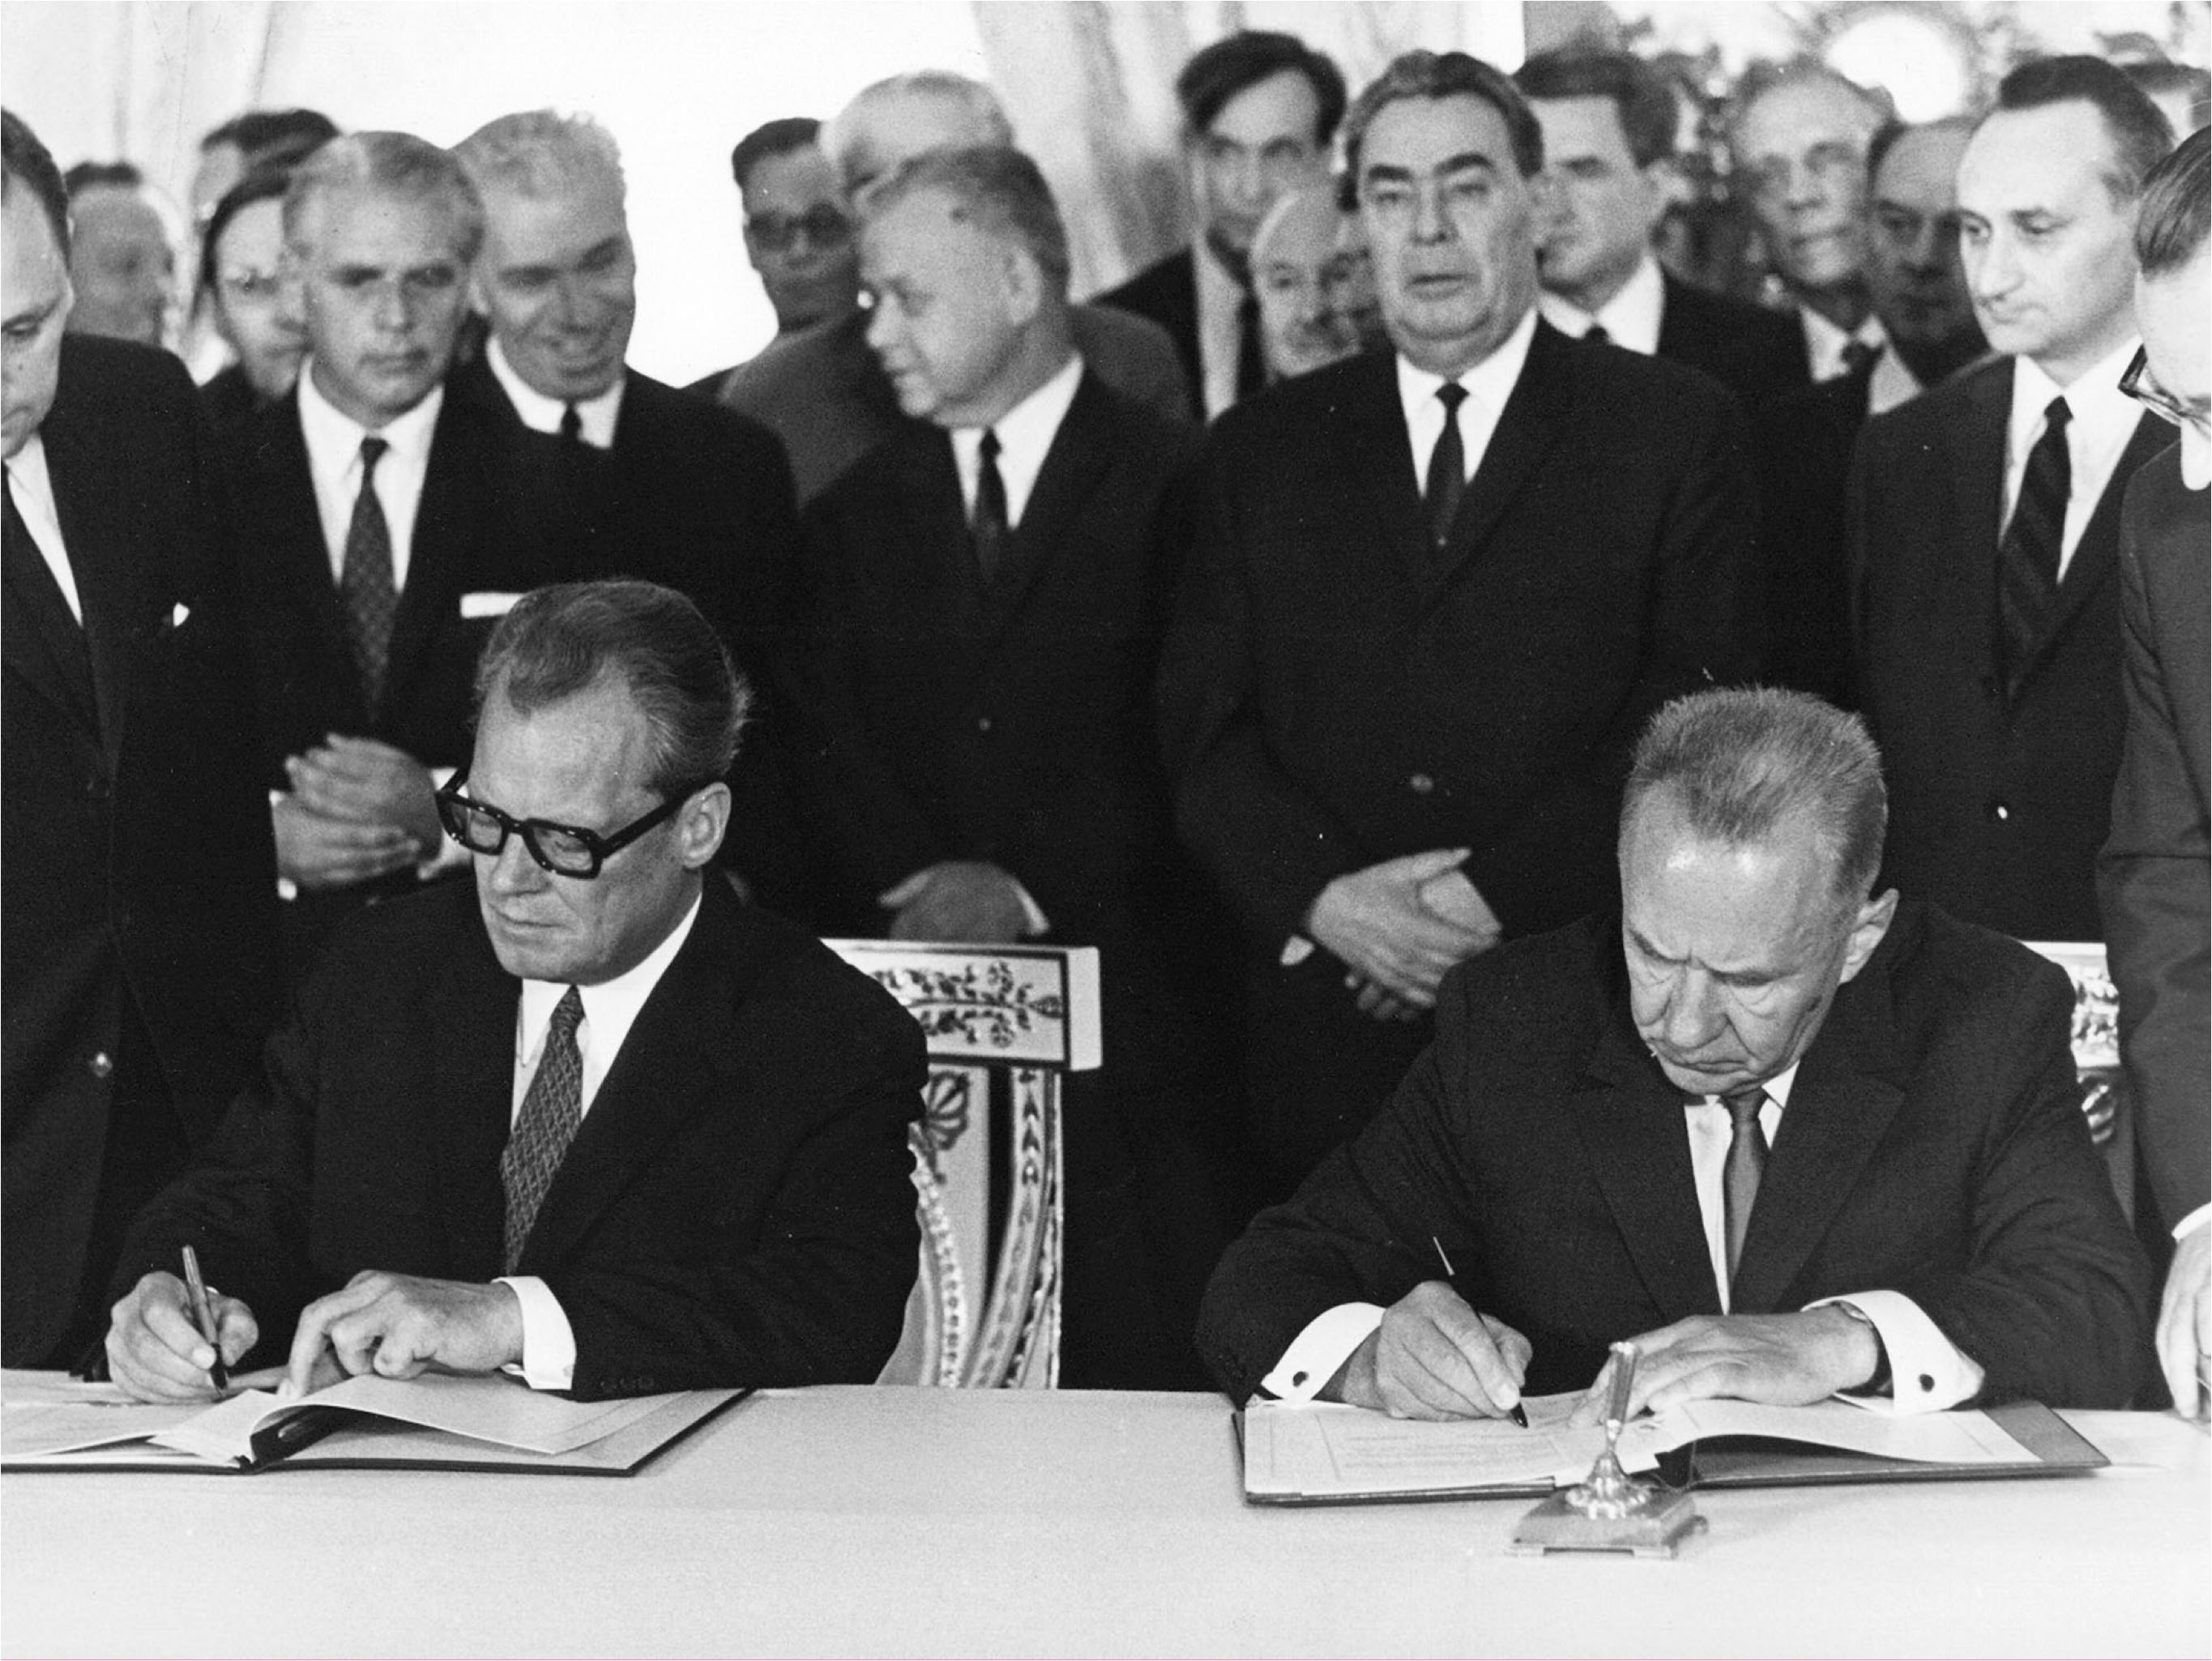 Chancellor Willy Brandt (left) and Soviet Prime Minister Alexej Kosygin (right) sign the Treaty of Moscow